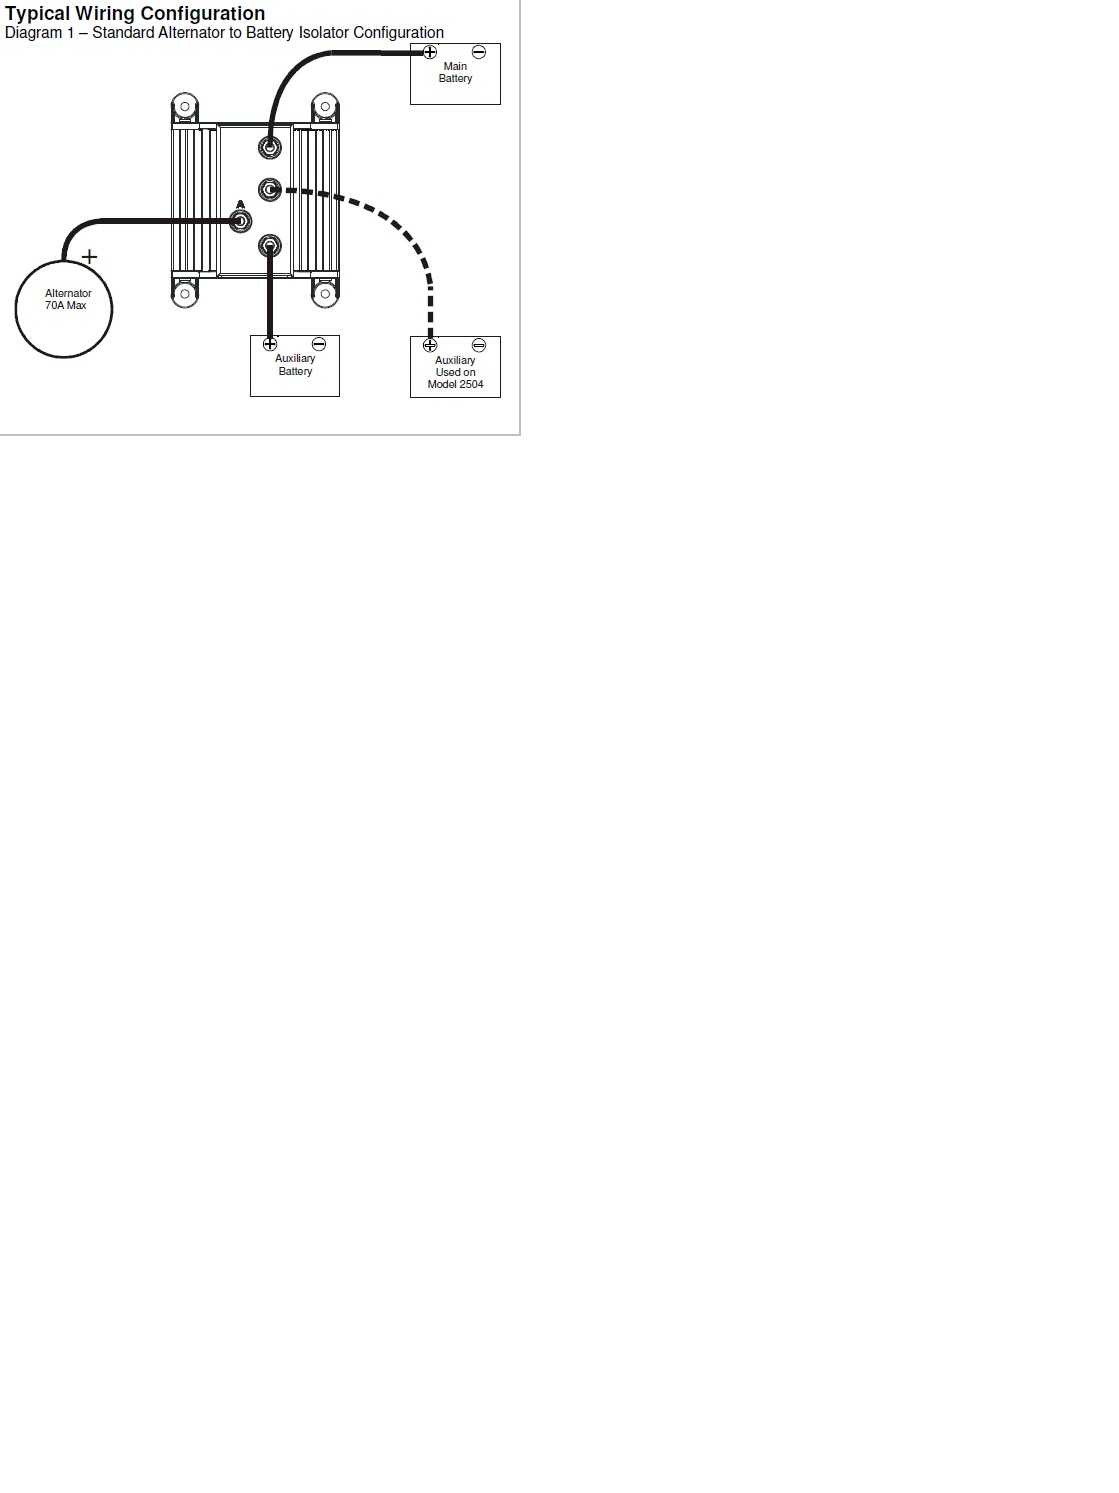 I Want To Install A Battery Isolator On 2006 Mercury 75hp Efi 4 Multi Wiring Diagram Graphic